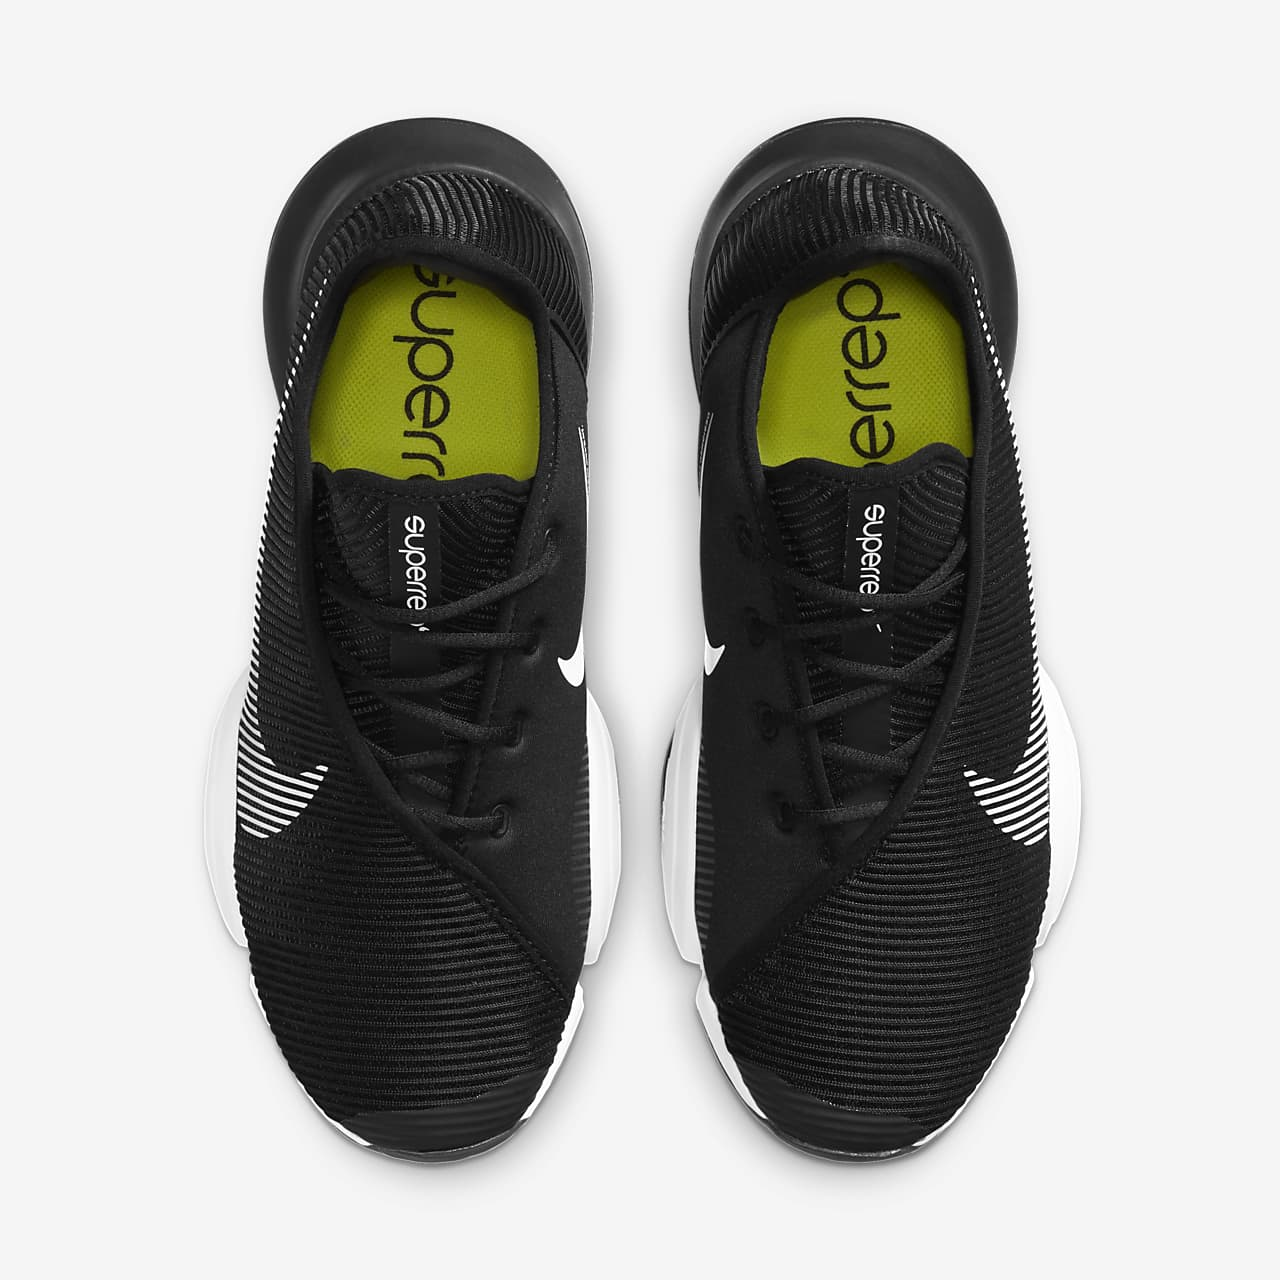 유럽직배송 나이키 NIKE Nike Air Zoom SuperRep 2 Women's HIIT Class Shoe CU5925-001